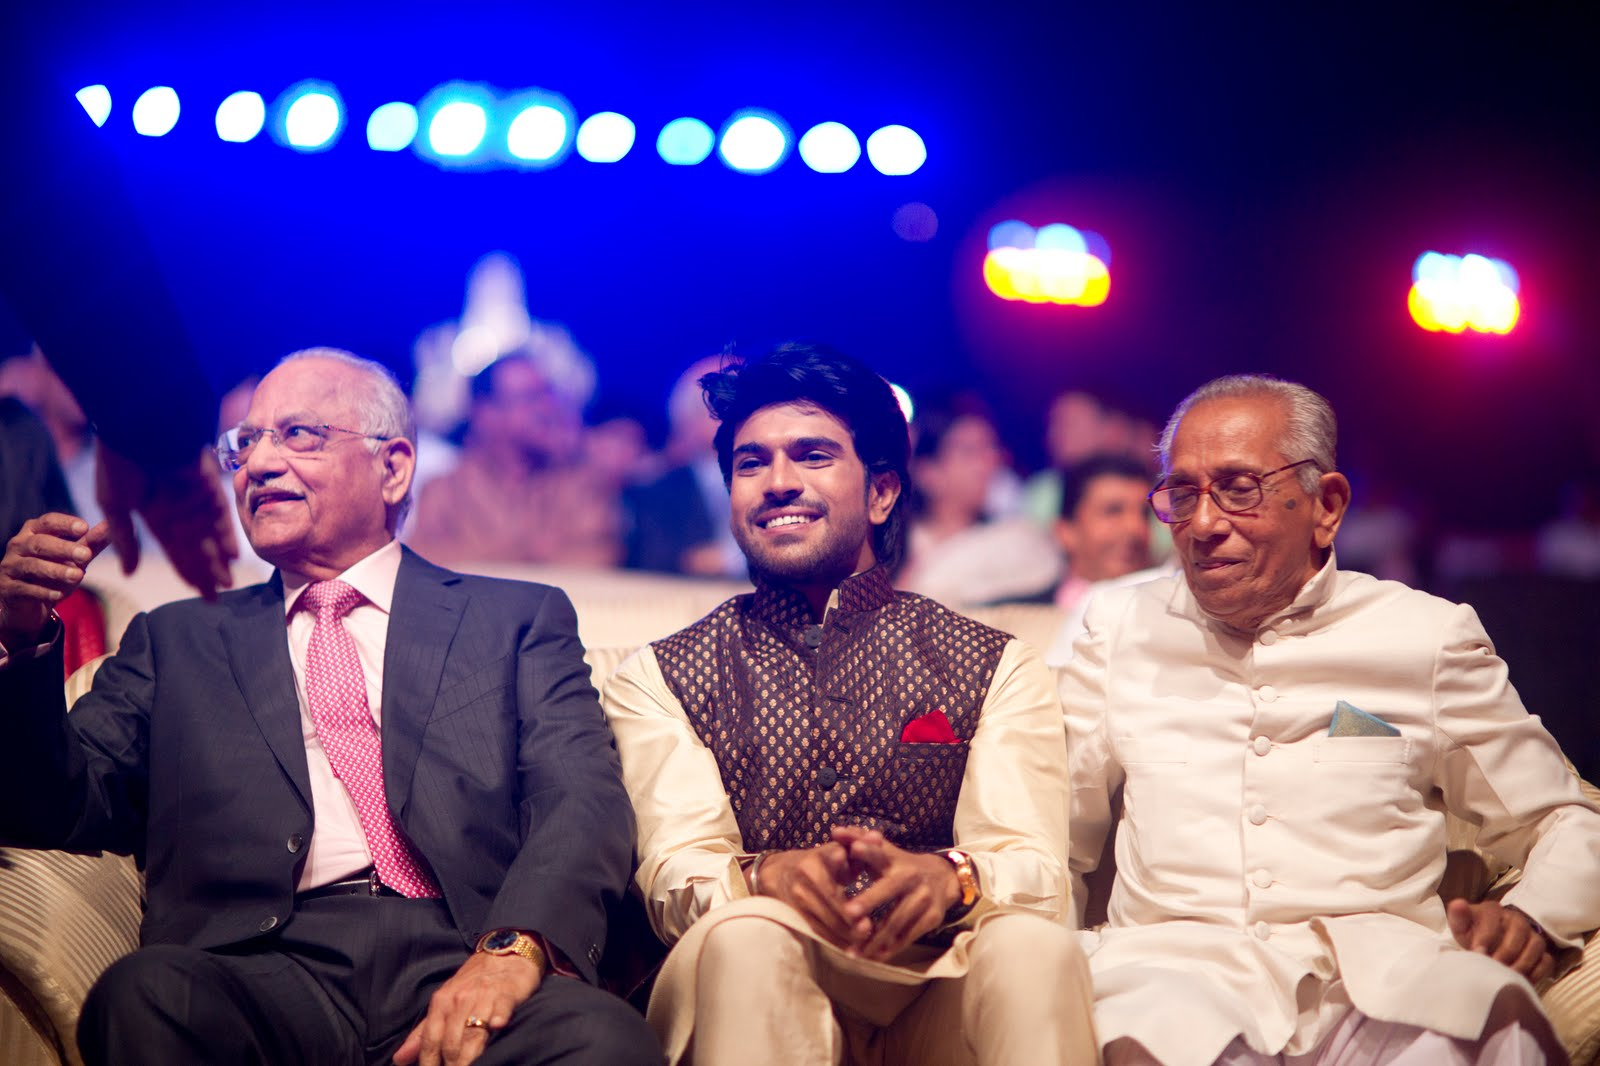 http://3.bp.blogspot.com/-NhLLxJeBrp0/Ttoe_BqgniI/AAAAAAAAFhY/tyBSpVE0Vvo/s1600/Ram-Charan-Upasana-Engagement-party-wallpapers%2540actressworld.net.jpg